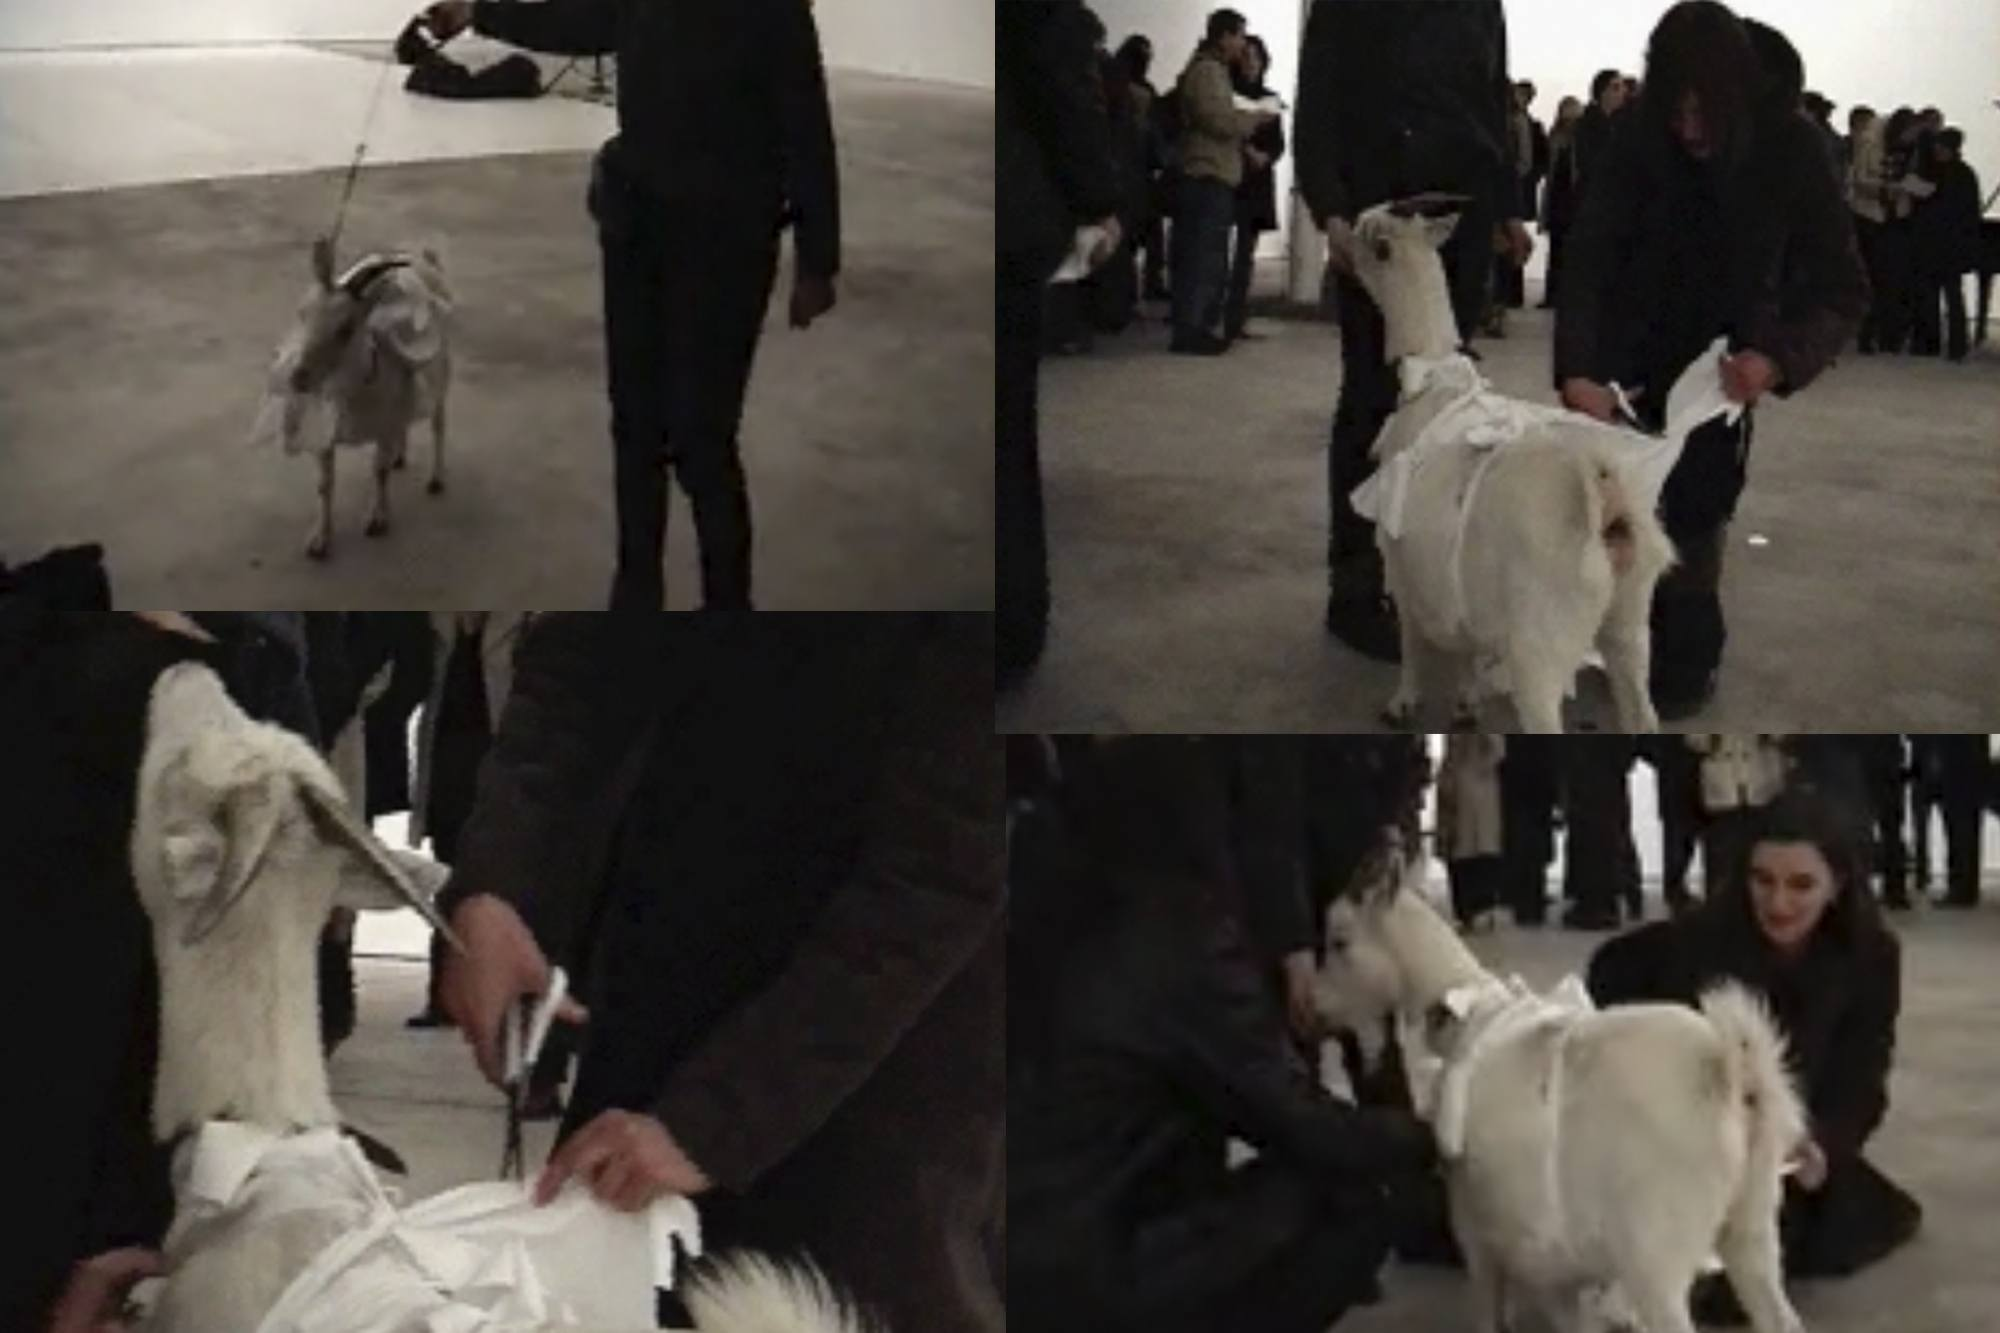 A composite image of audience members approaching a goat wearing a t shirt, recreating Yoko Ono's cut piece (1964).